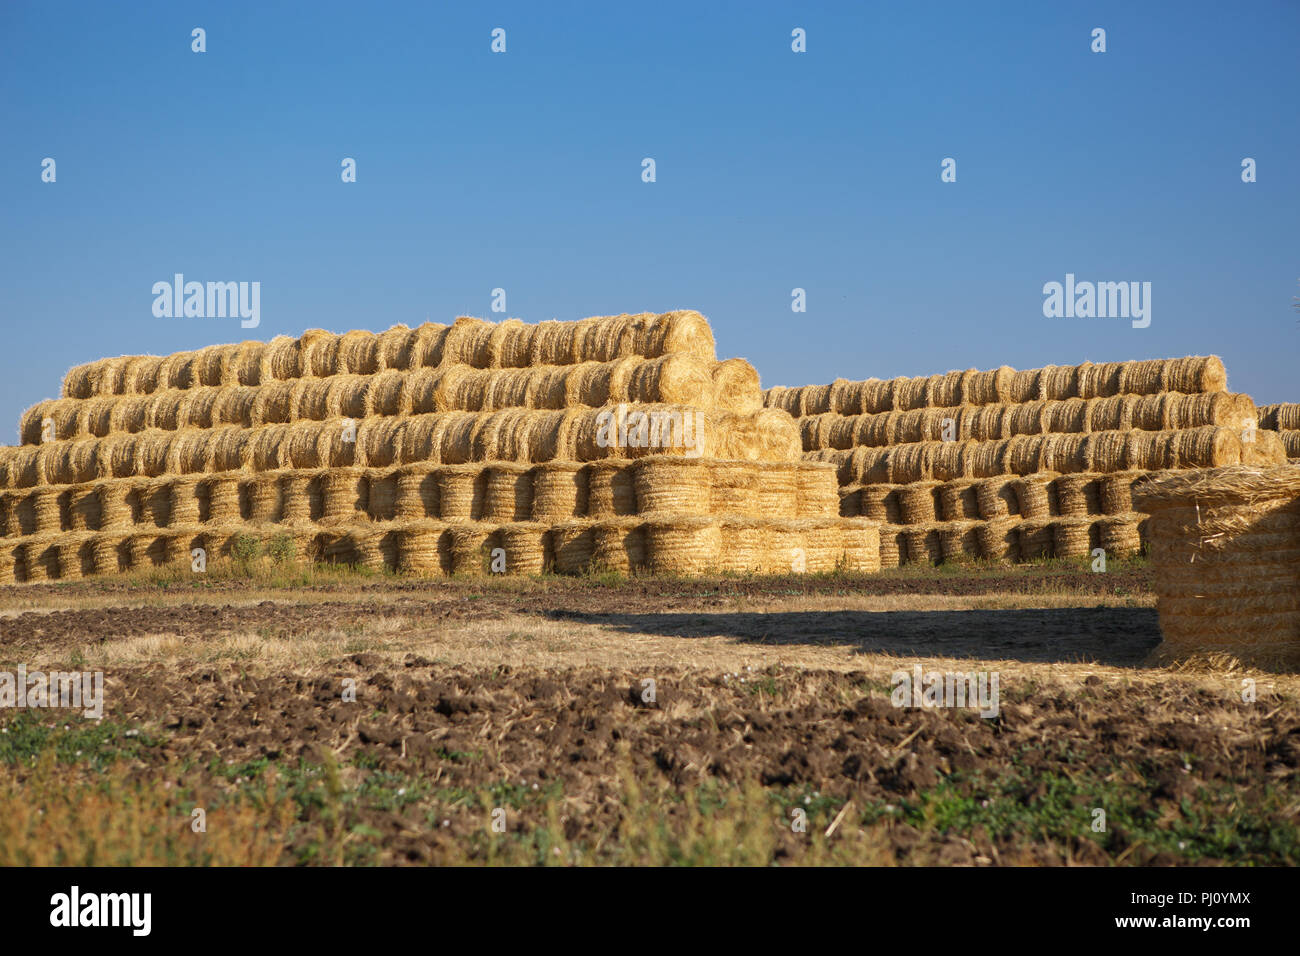 Dry Haystack Stock Photos Amp Dry Haystack Stock Images Alamy